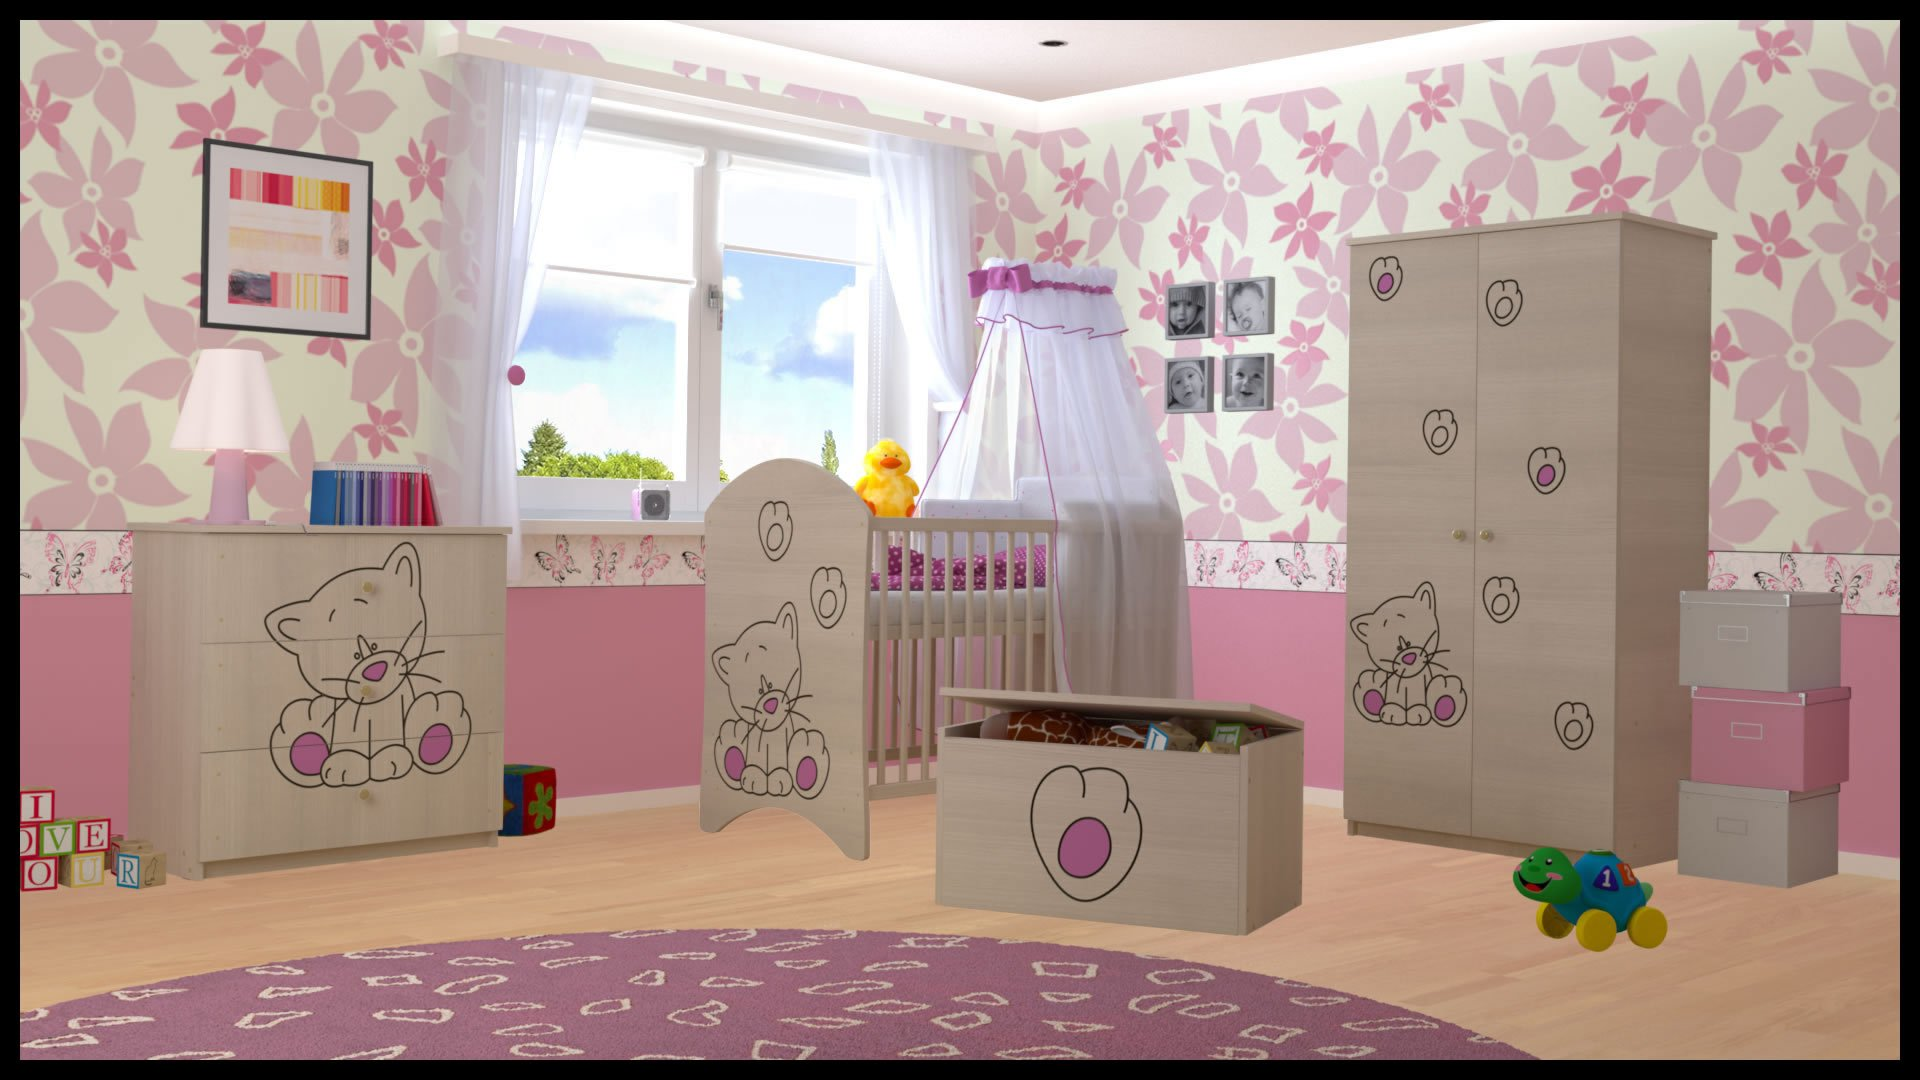 5 PCS BABY NURSERY FURNITURE SET - COT + MATTRESS + WARDROBE + CHEST OF DRAWERS + TOY BOX (model 6)  Included: cot + mattress + wardrobe + chest of drawers + toy box Material: wood GREAT QUALITY 1